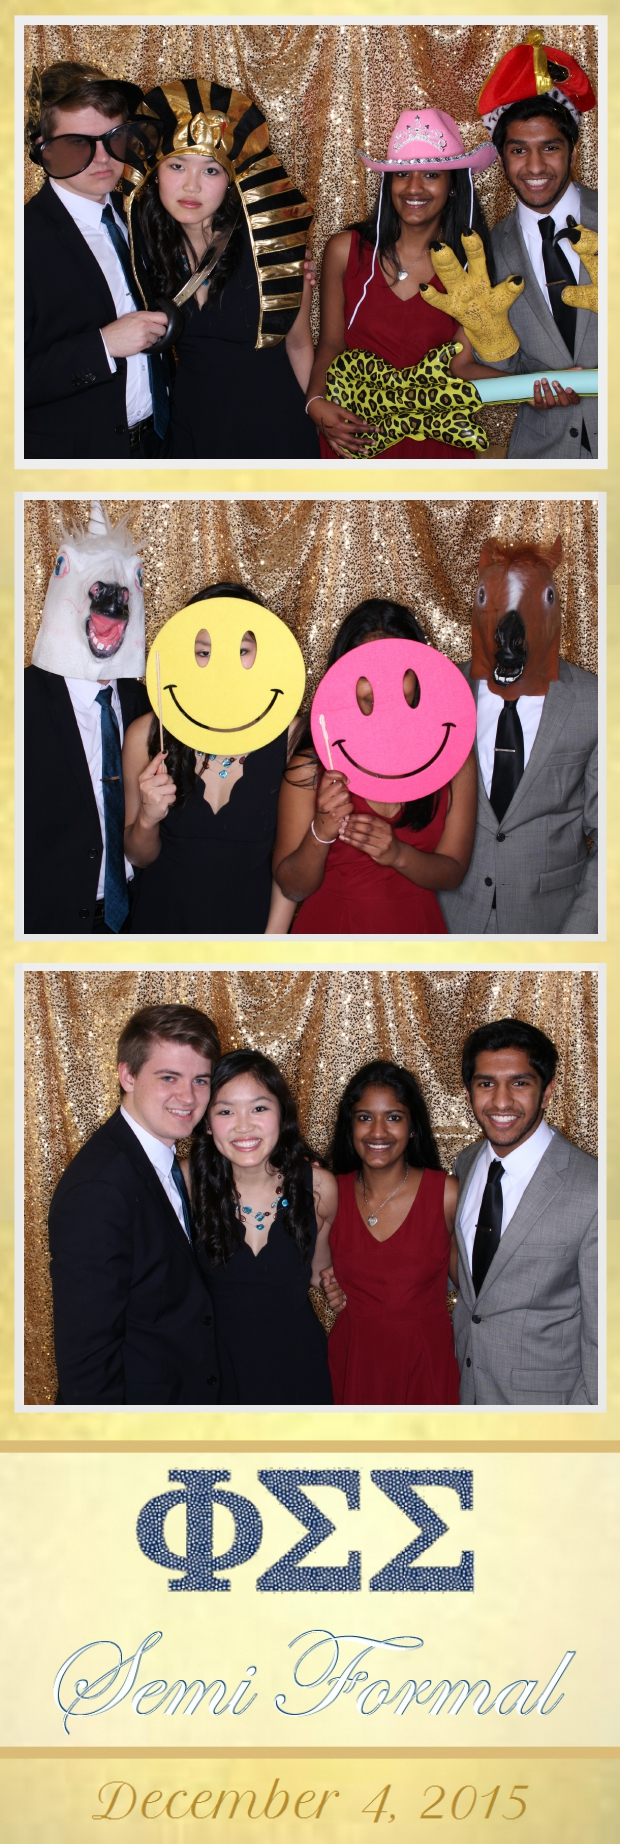 Guest House Events Photo Booth Phi Sigma Sigma Semi Formal (31).jpg